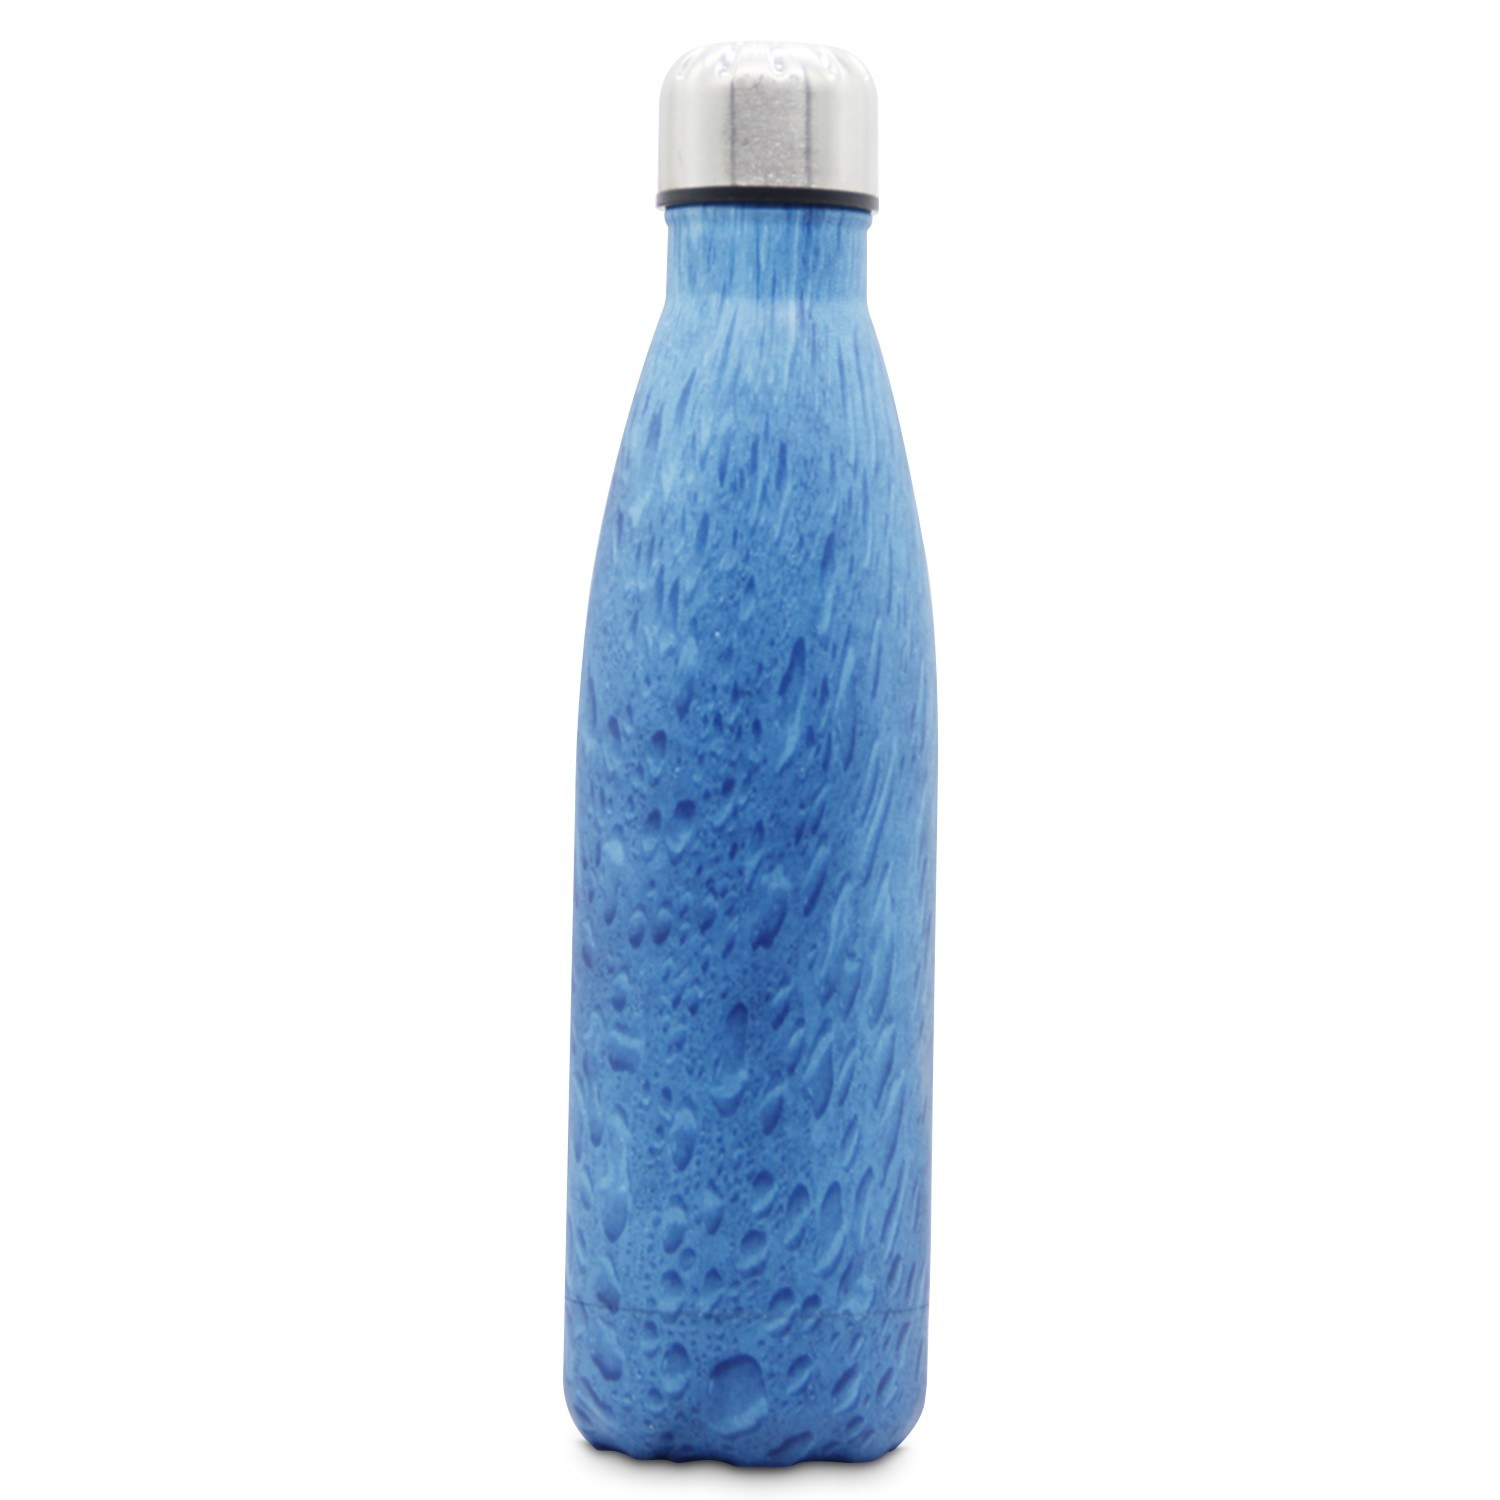 500mL Thermal Bottle Vacuum Cup Insulated Thermal Water Bottle Leakproof Stainless Steel Coffee Mug with Lid Drinking Cup Travel Home Office School Works Camping Cycling